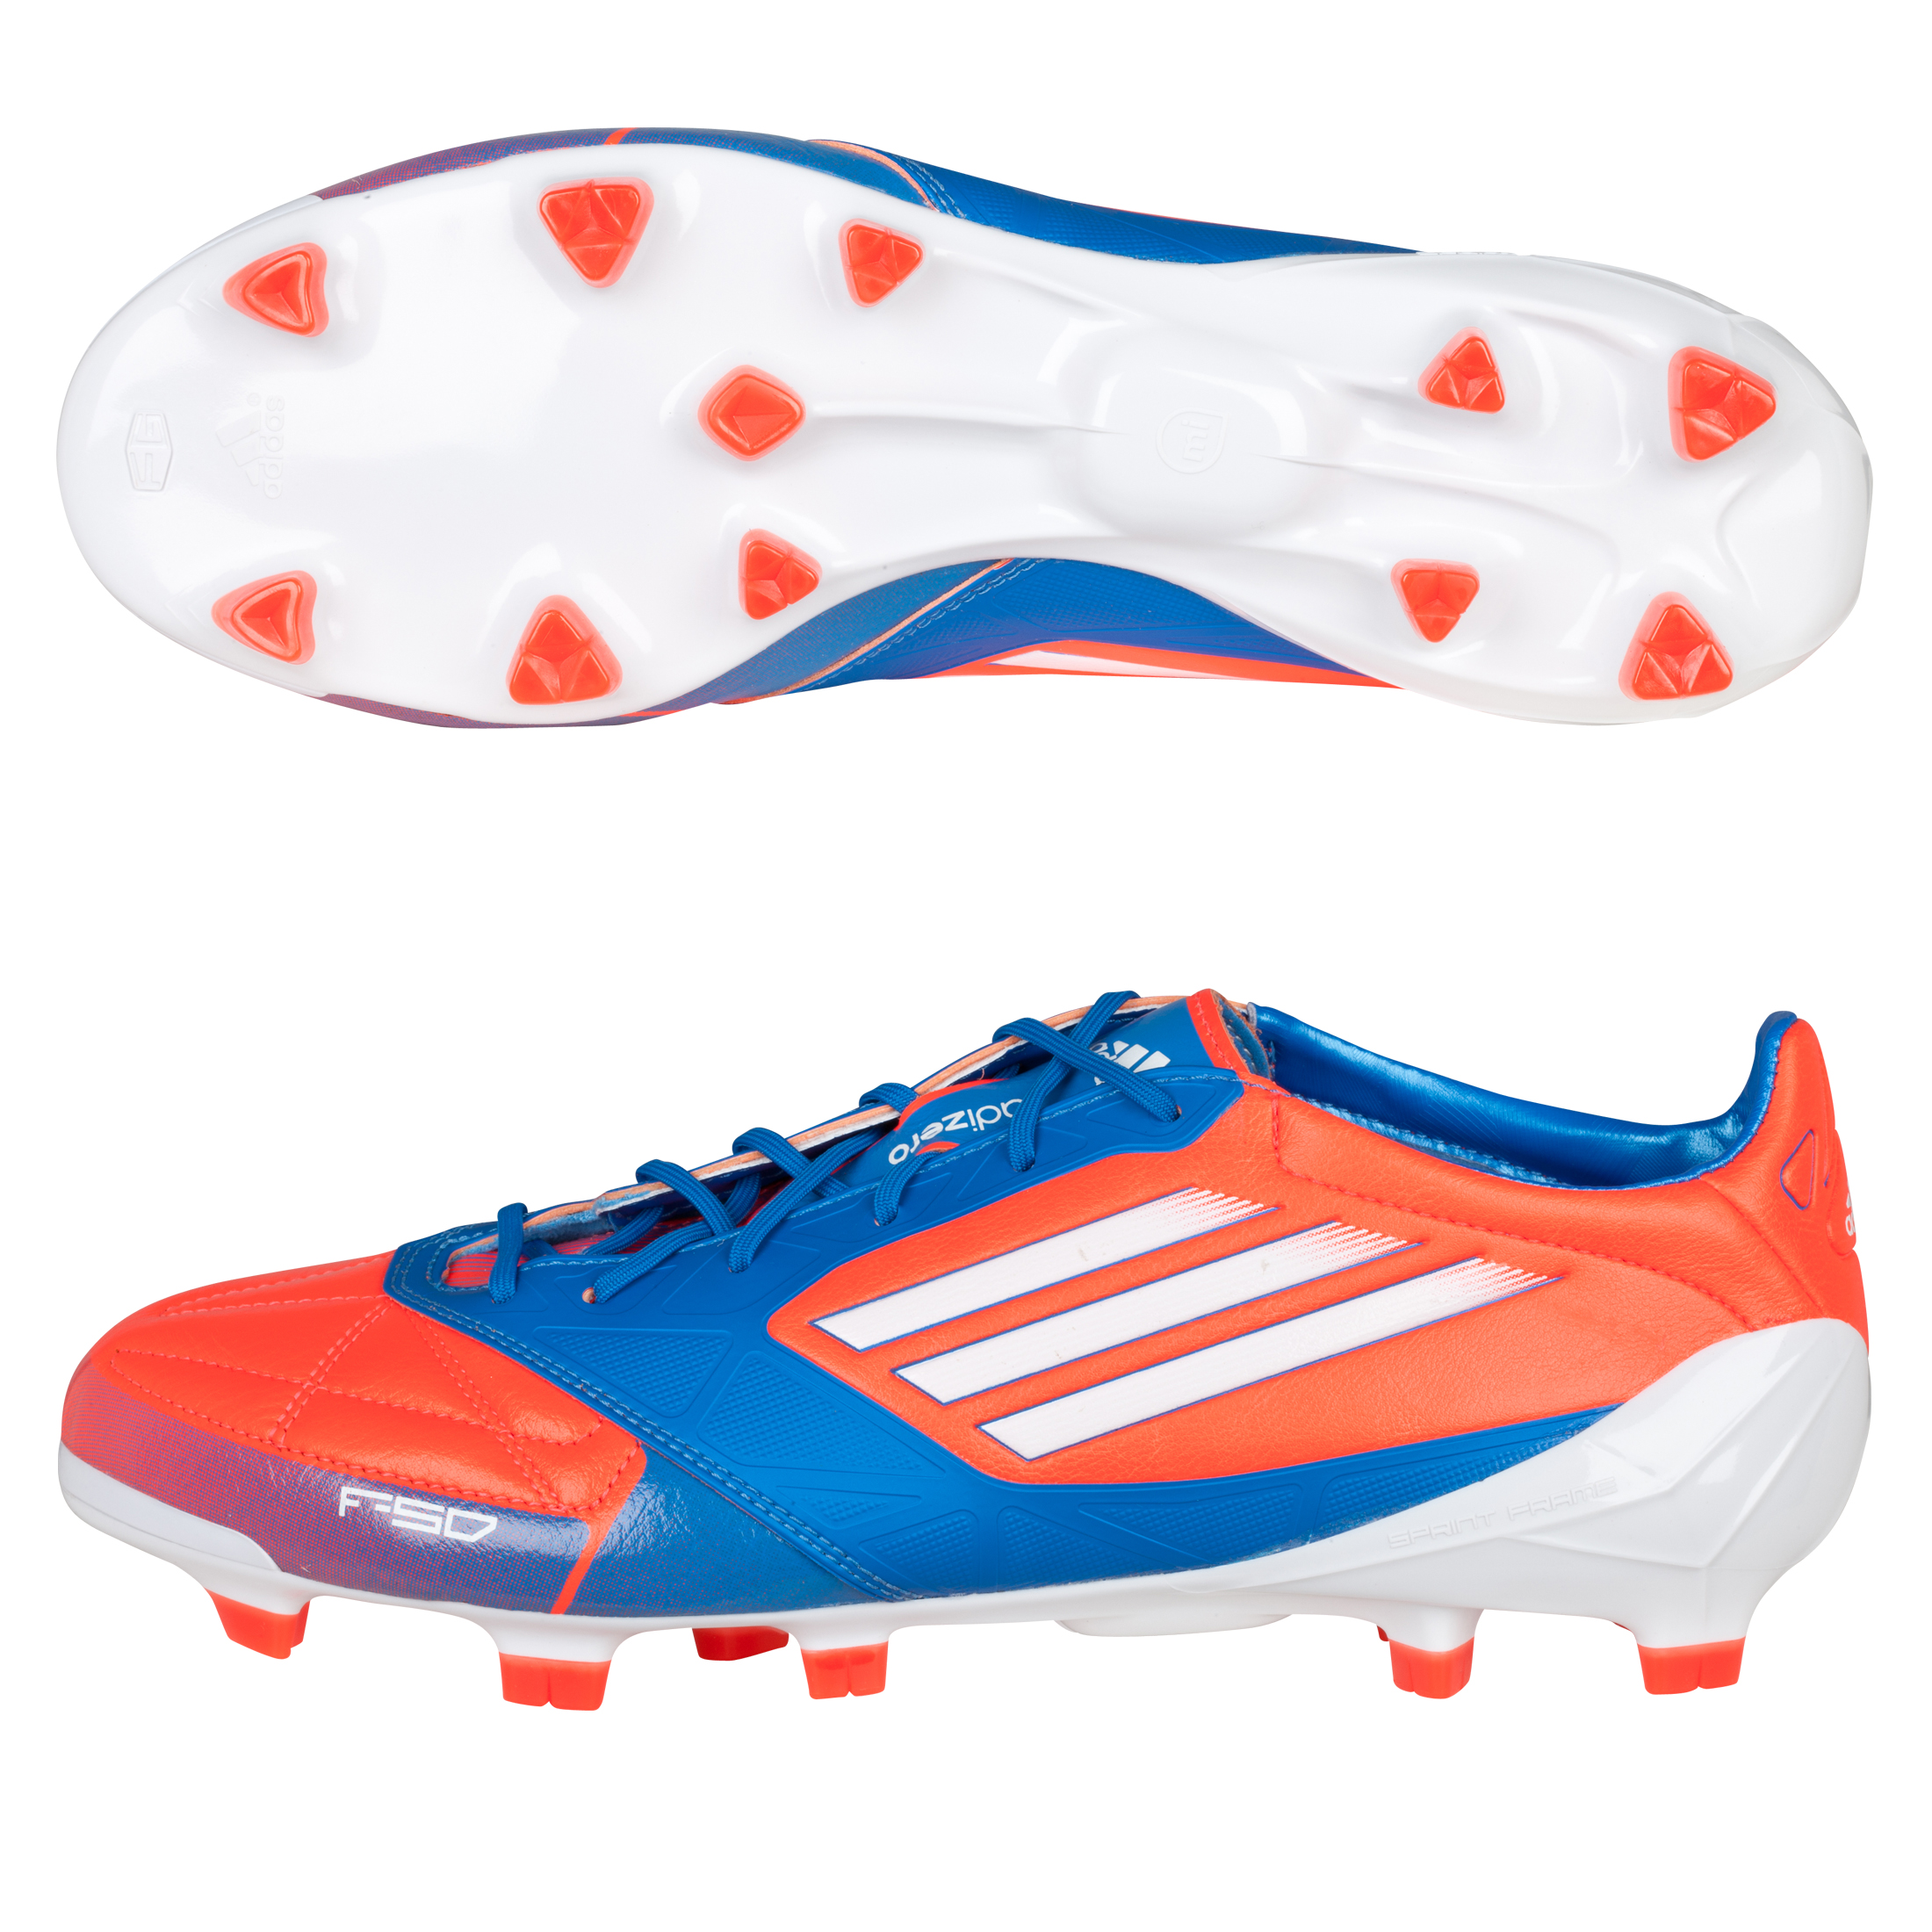 Adidas F50 Adizero TRX Firm Ground Leather Football Boots - Infrared/White/Bright Blue